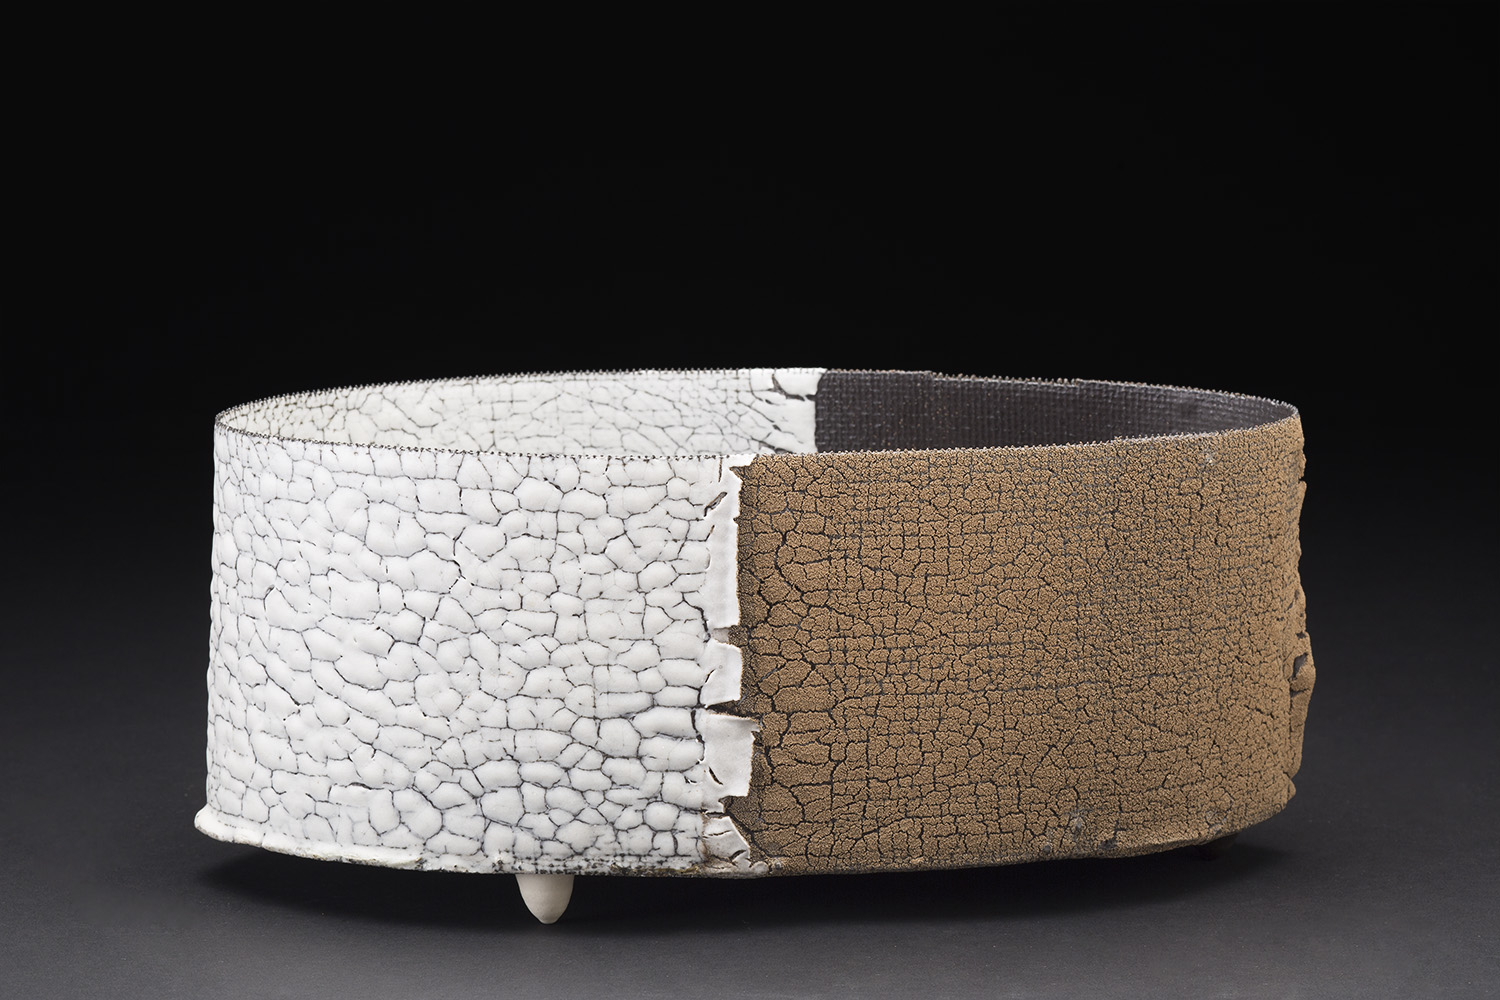 Rafa Perez    Untitled  , 2015 Steel mesh, porcelain, and clay fired at 1160 degrees 4.75 x 11 x 5.5 inches 12.1 x 27.9 x 14 cm RPe 46